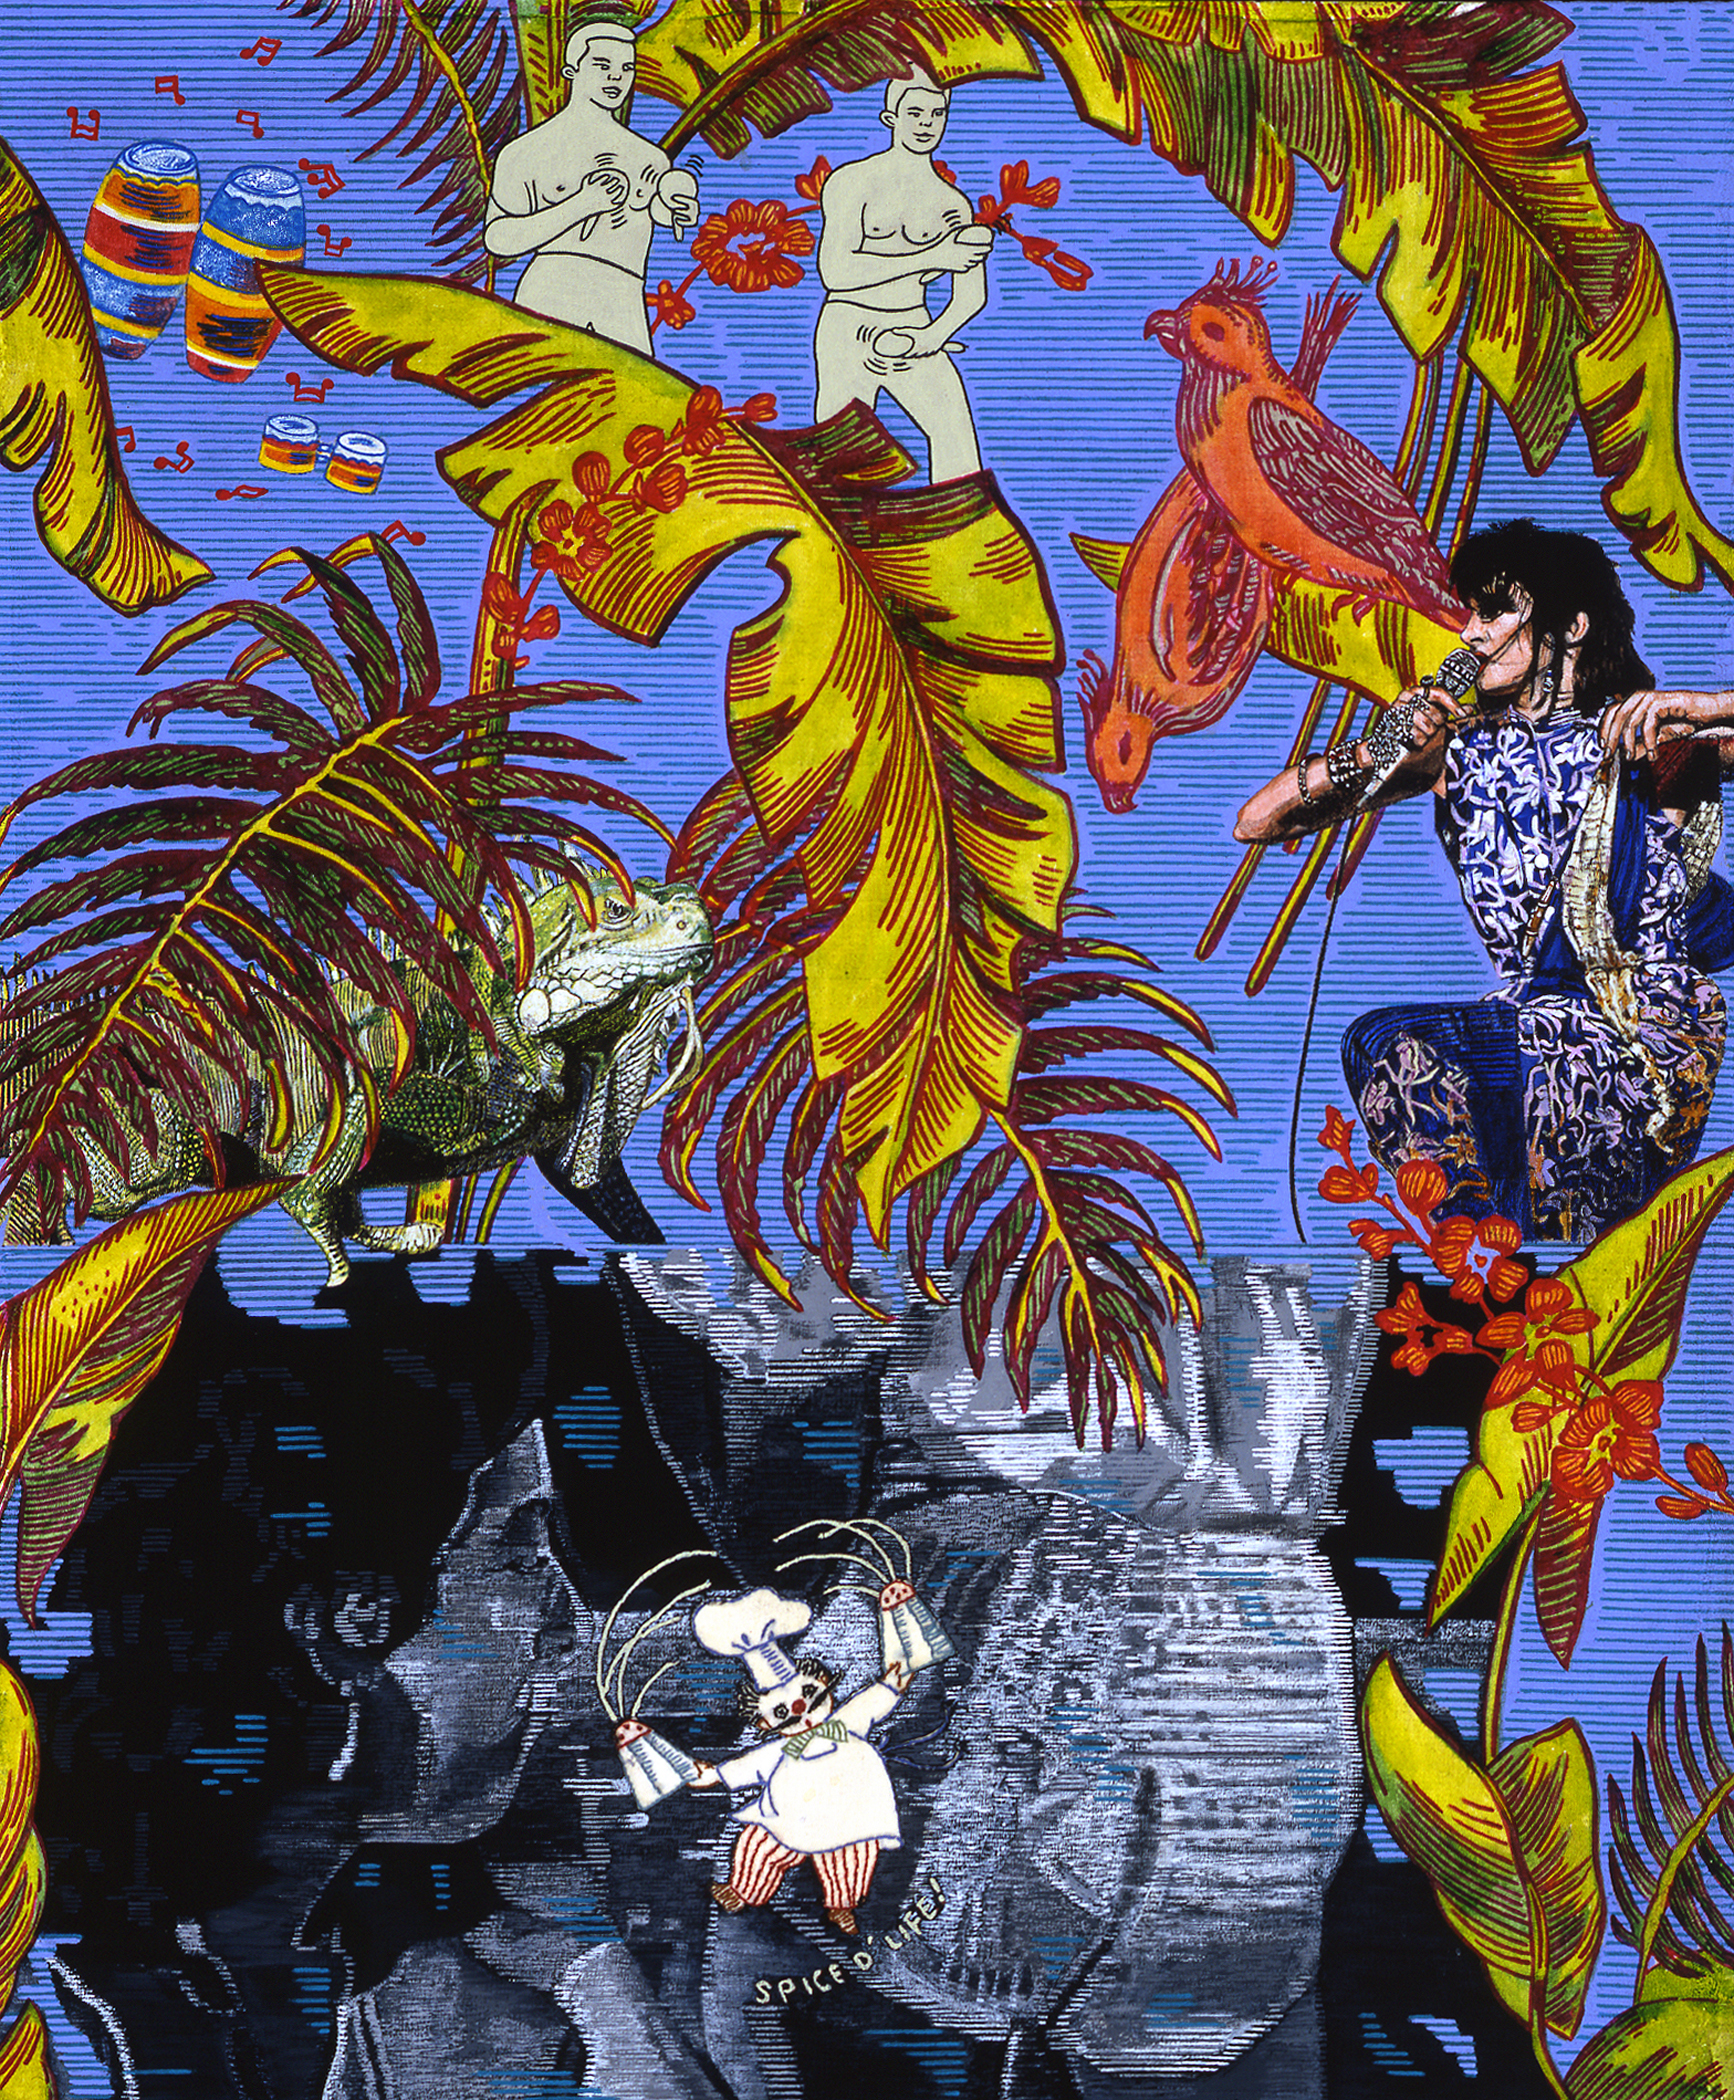 CAROLE CAROOMPAS, Psychedelic Jungle: Teenage Medea and the Cha Cha Boys, 2002 acrylic on found embroidery over panel 33 x 26 inches